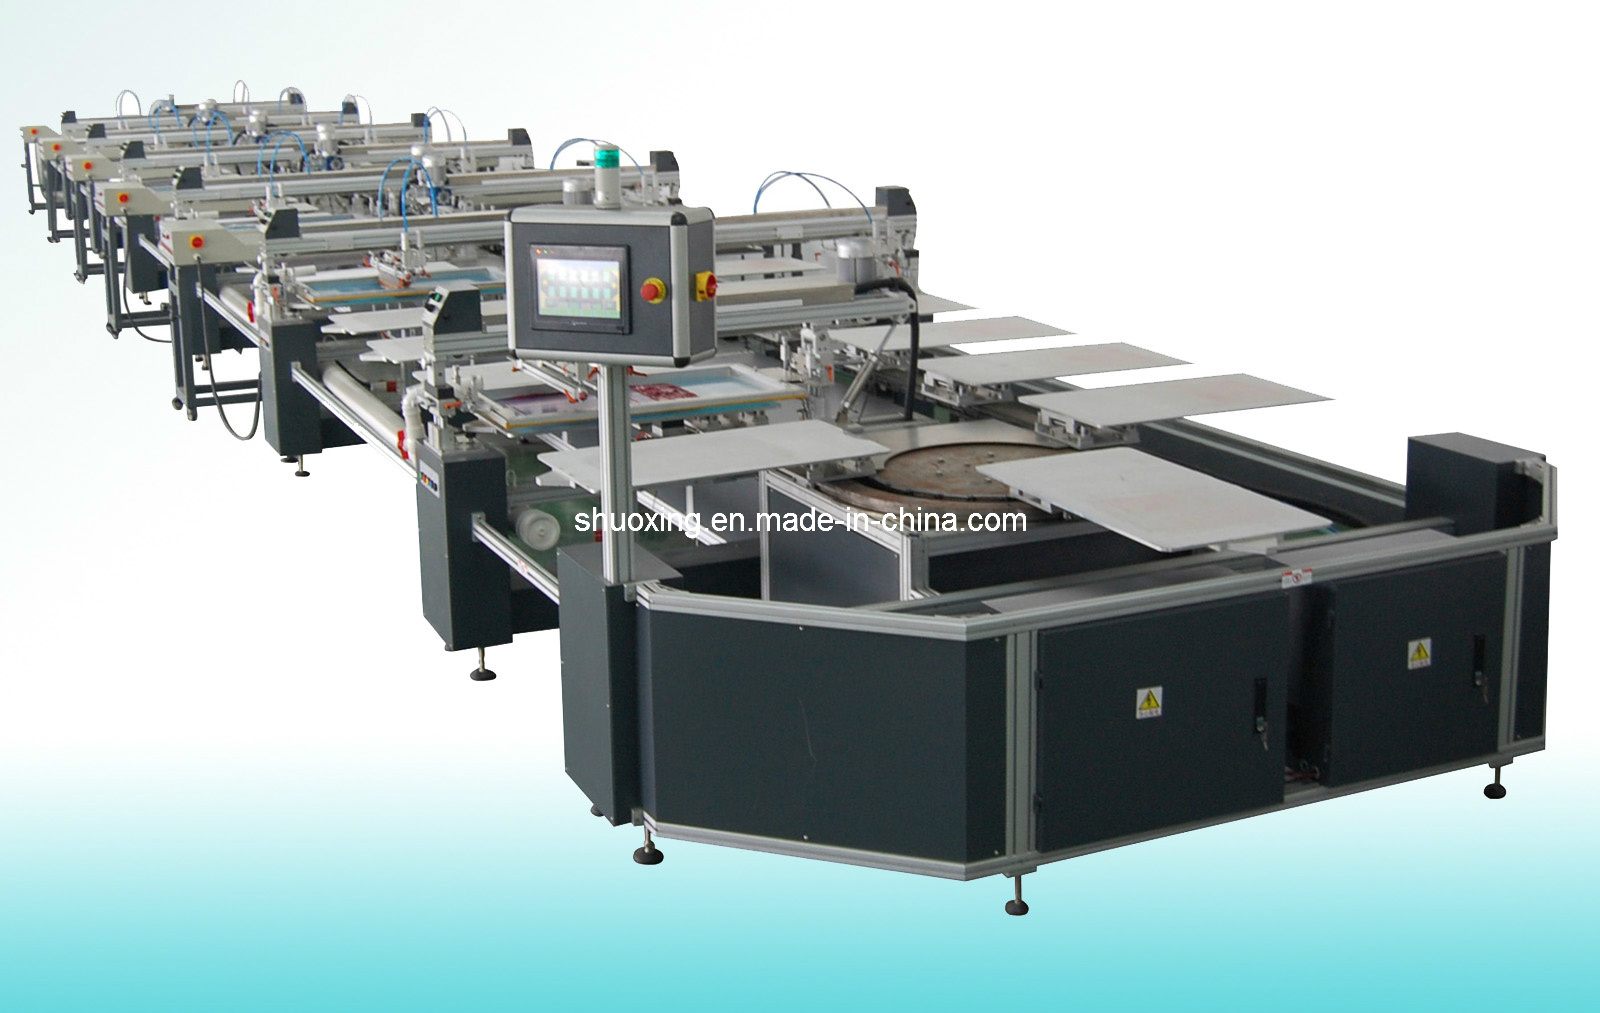 Oval Fully Automatic T Shirt Screen Printer, Automatic Textile Screen Printing Machine